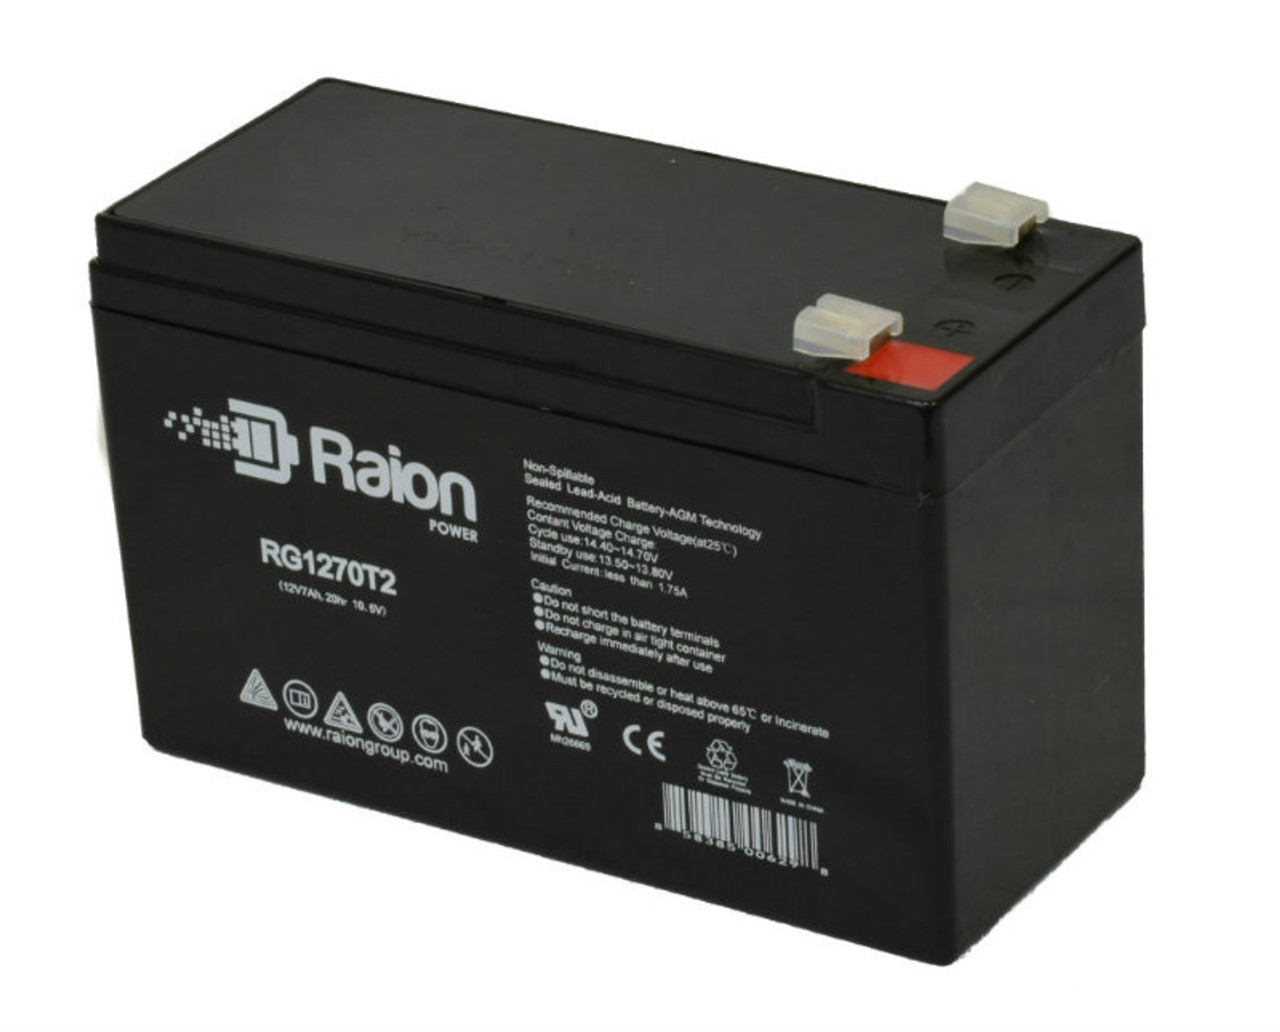 Raion Power RG1270T1 Replacement Battery for OUTDO OT7.2-12